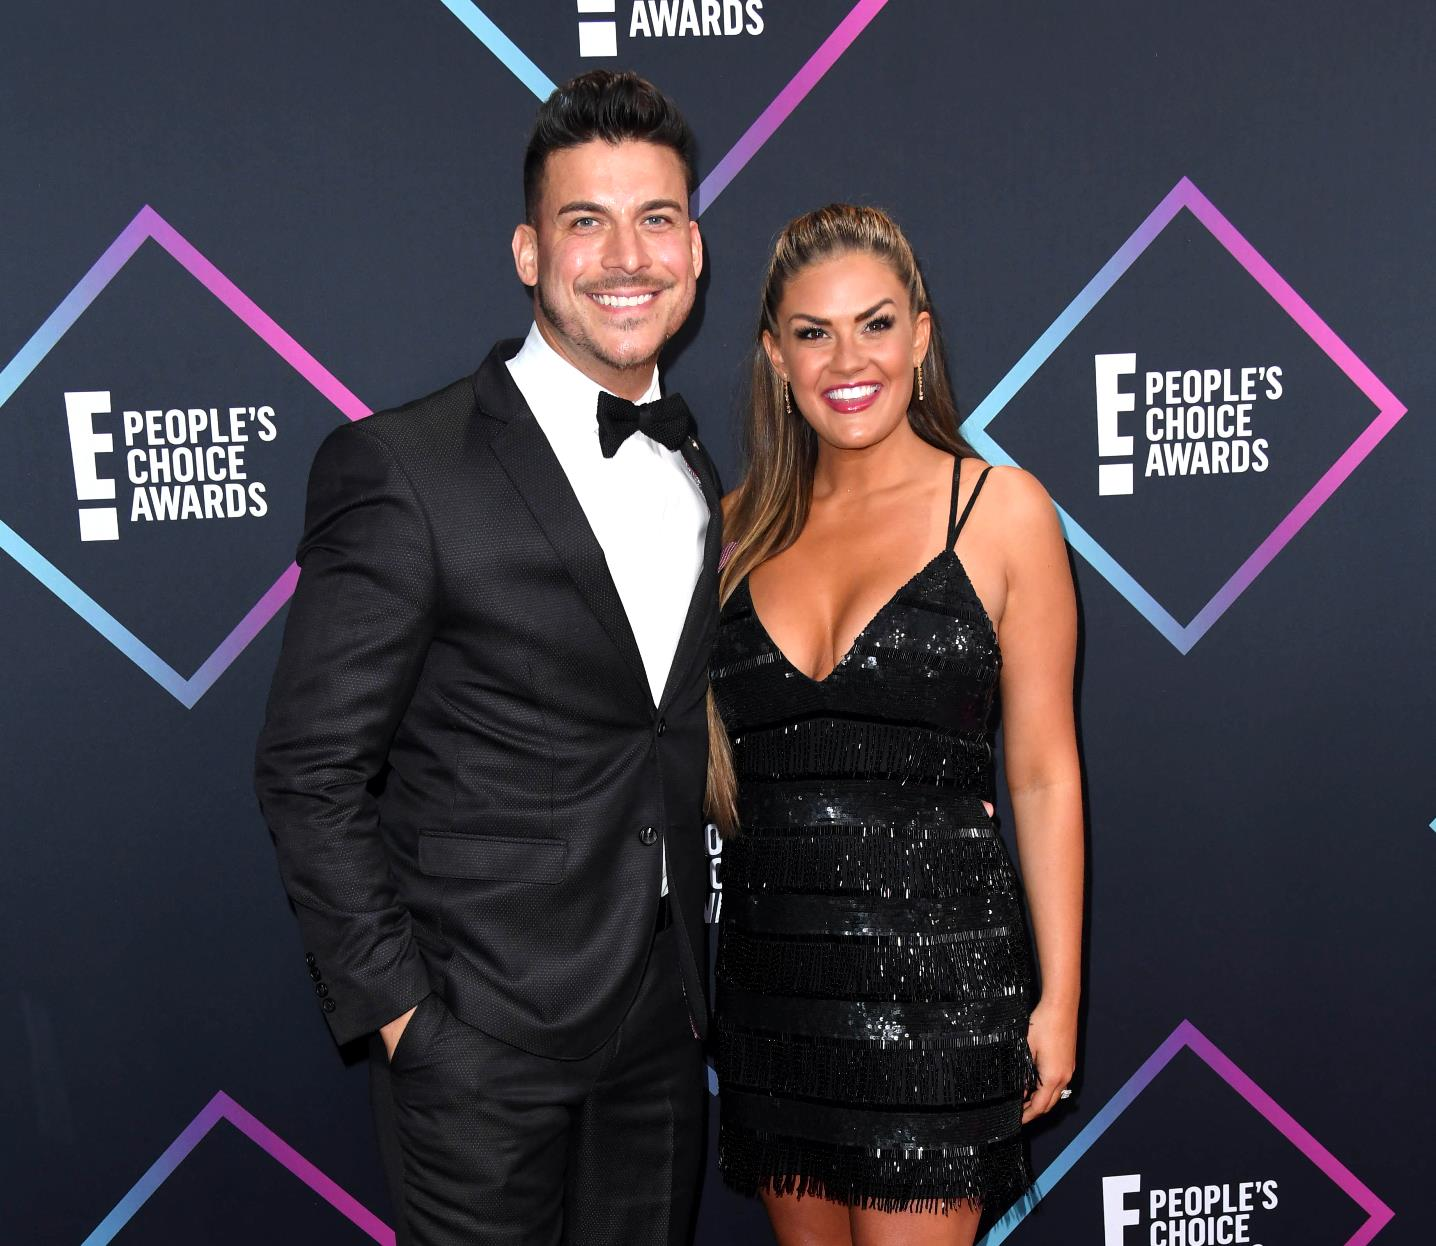 Vanderpump Rules Jax Taylor and Brittany Cartwright Wedding Spinoff